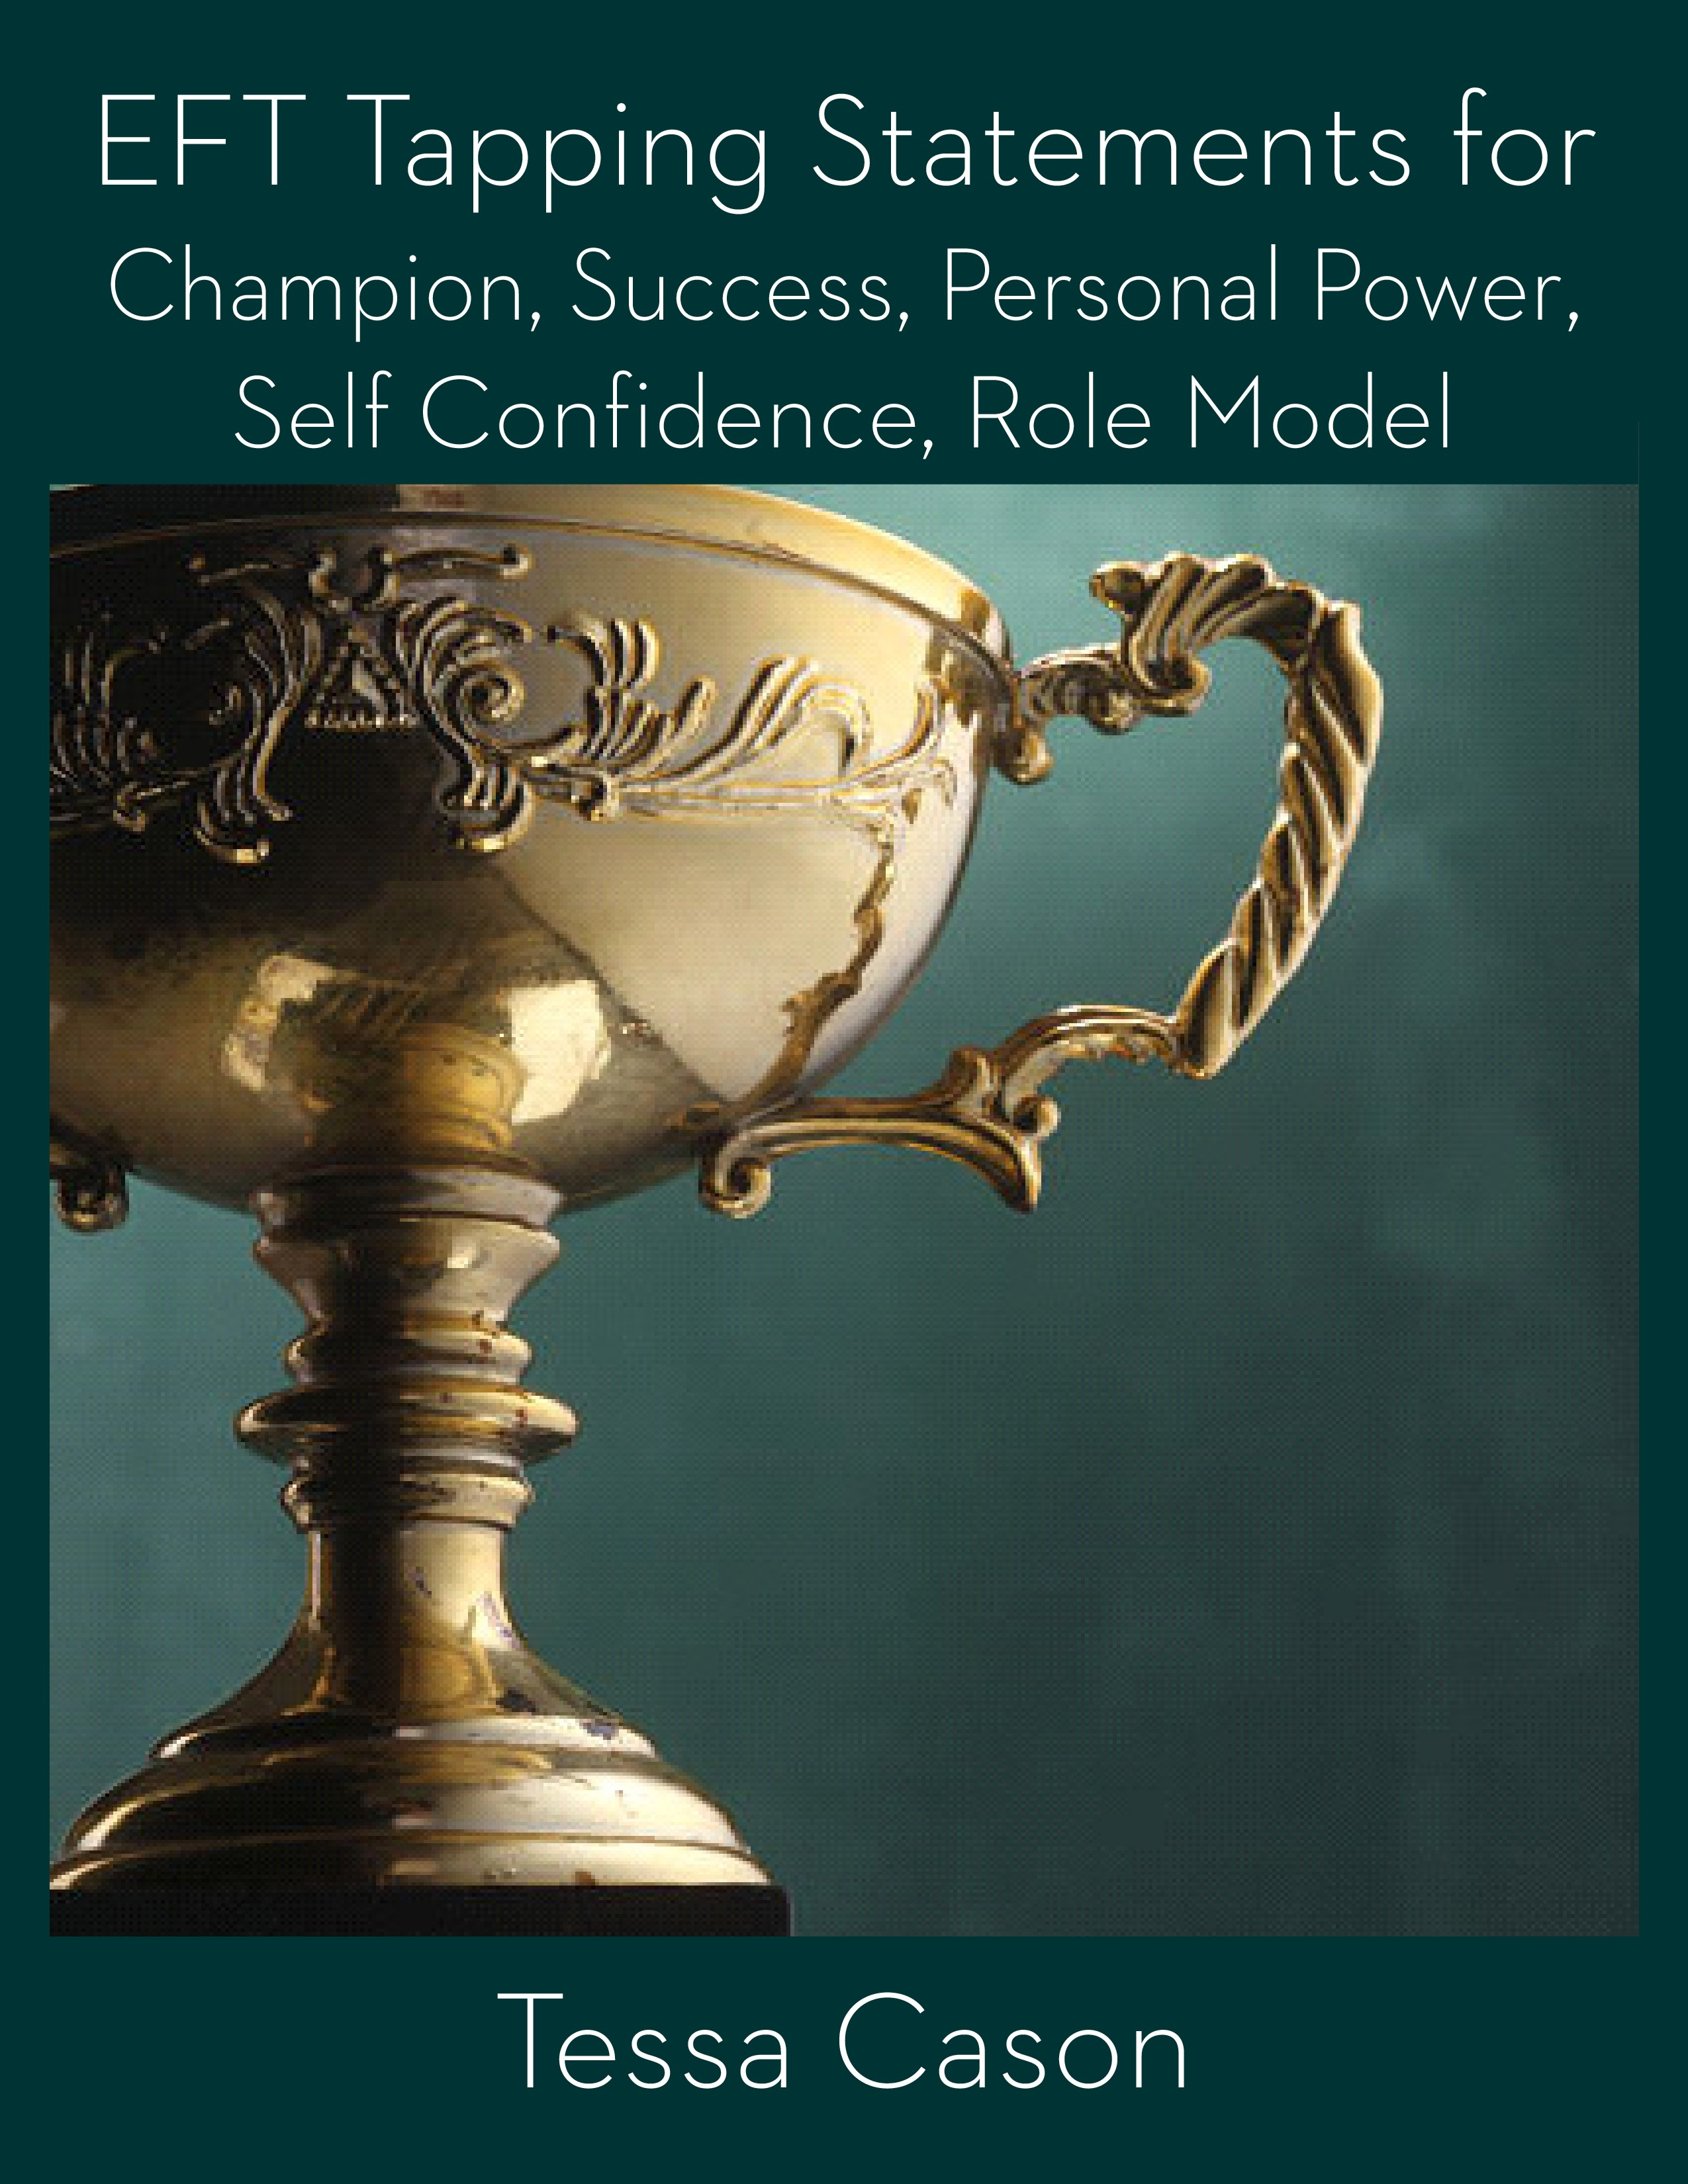 EFT Tapping Statements for Champion, Success, Personal Power, Self Confidence, Role Model